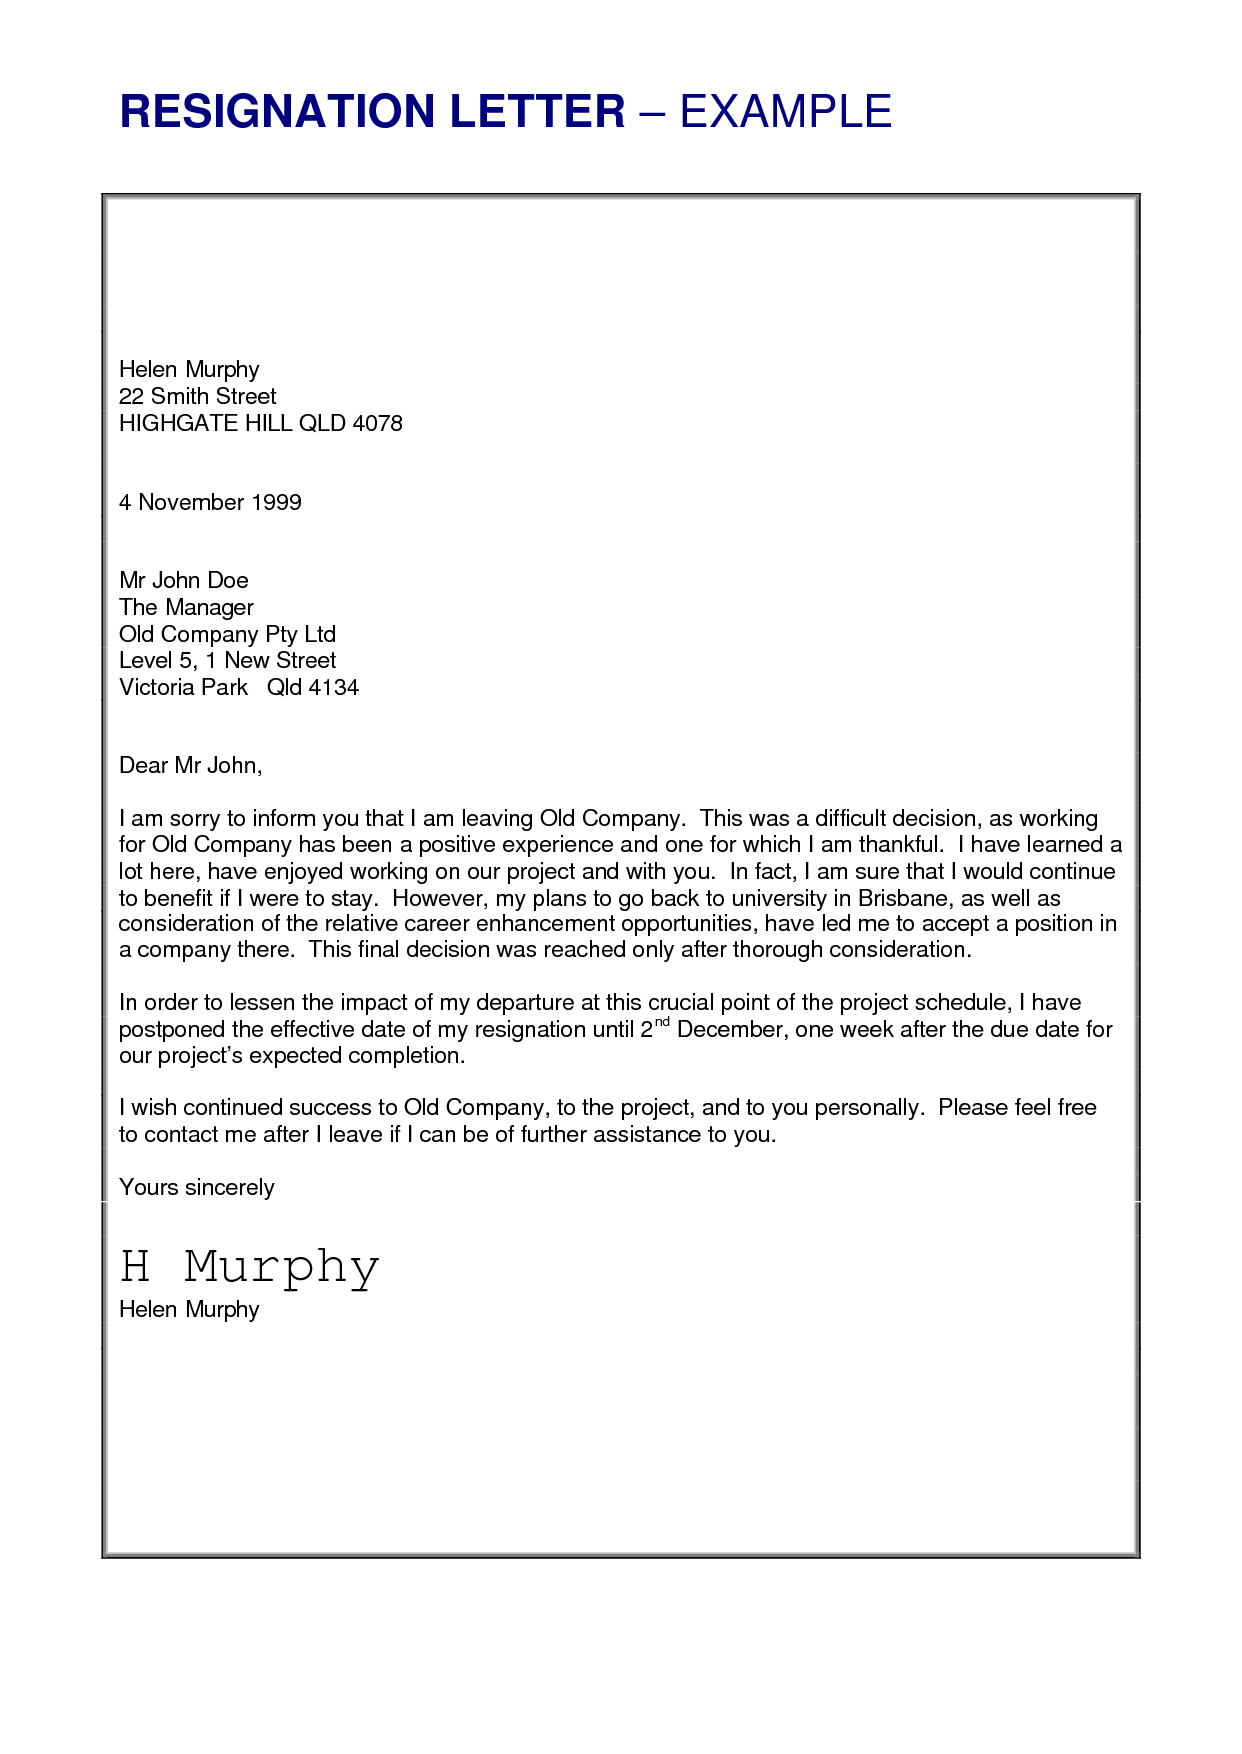 Free Printable Resignation Letter Template - Job Resignation Letter Sample Loganun Blog